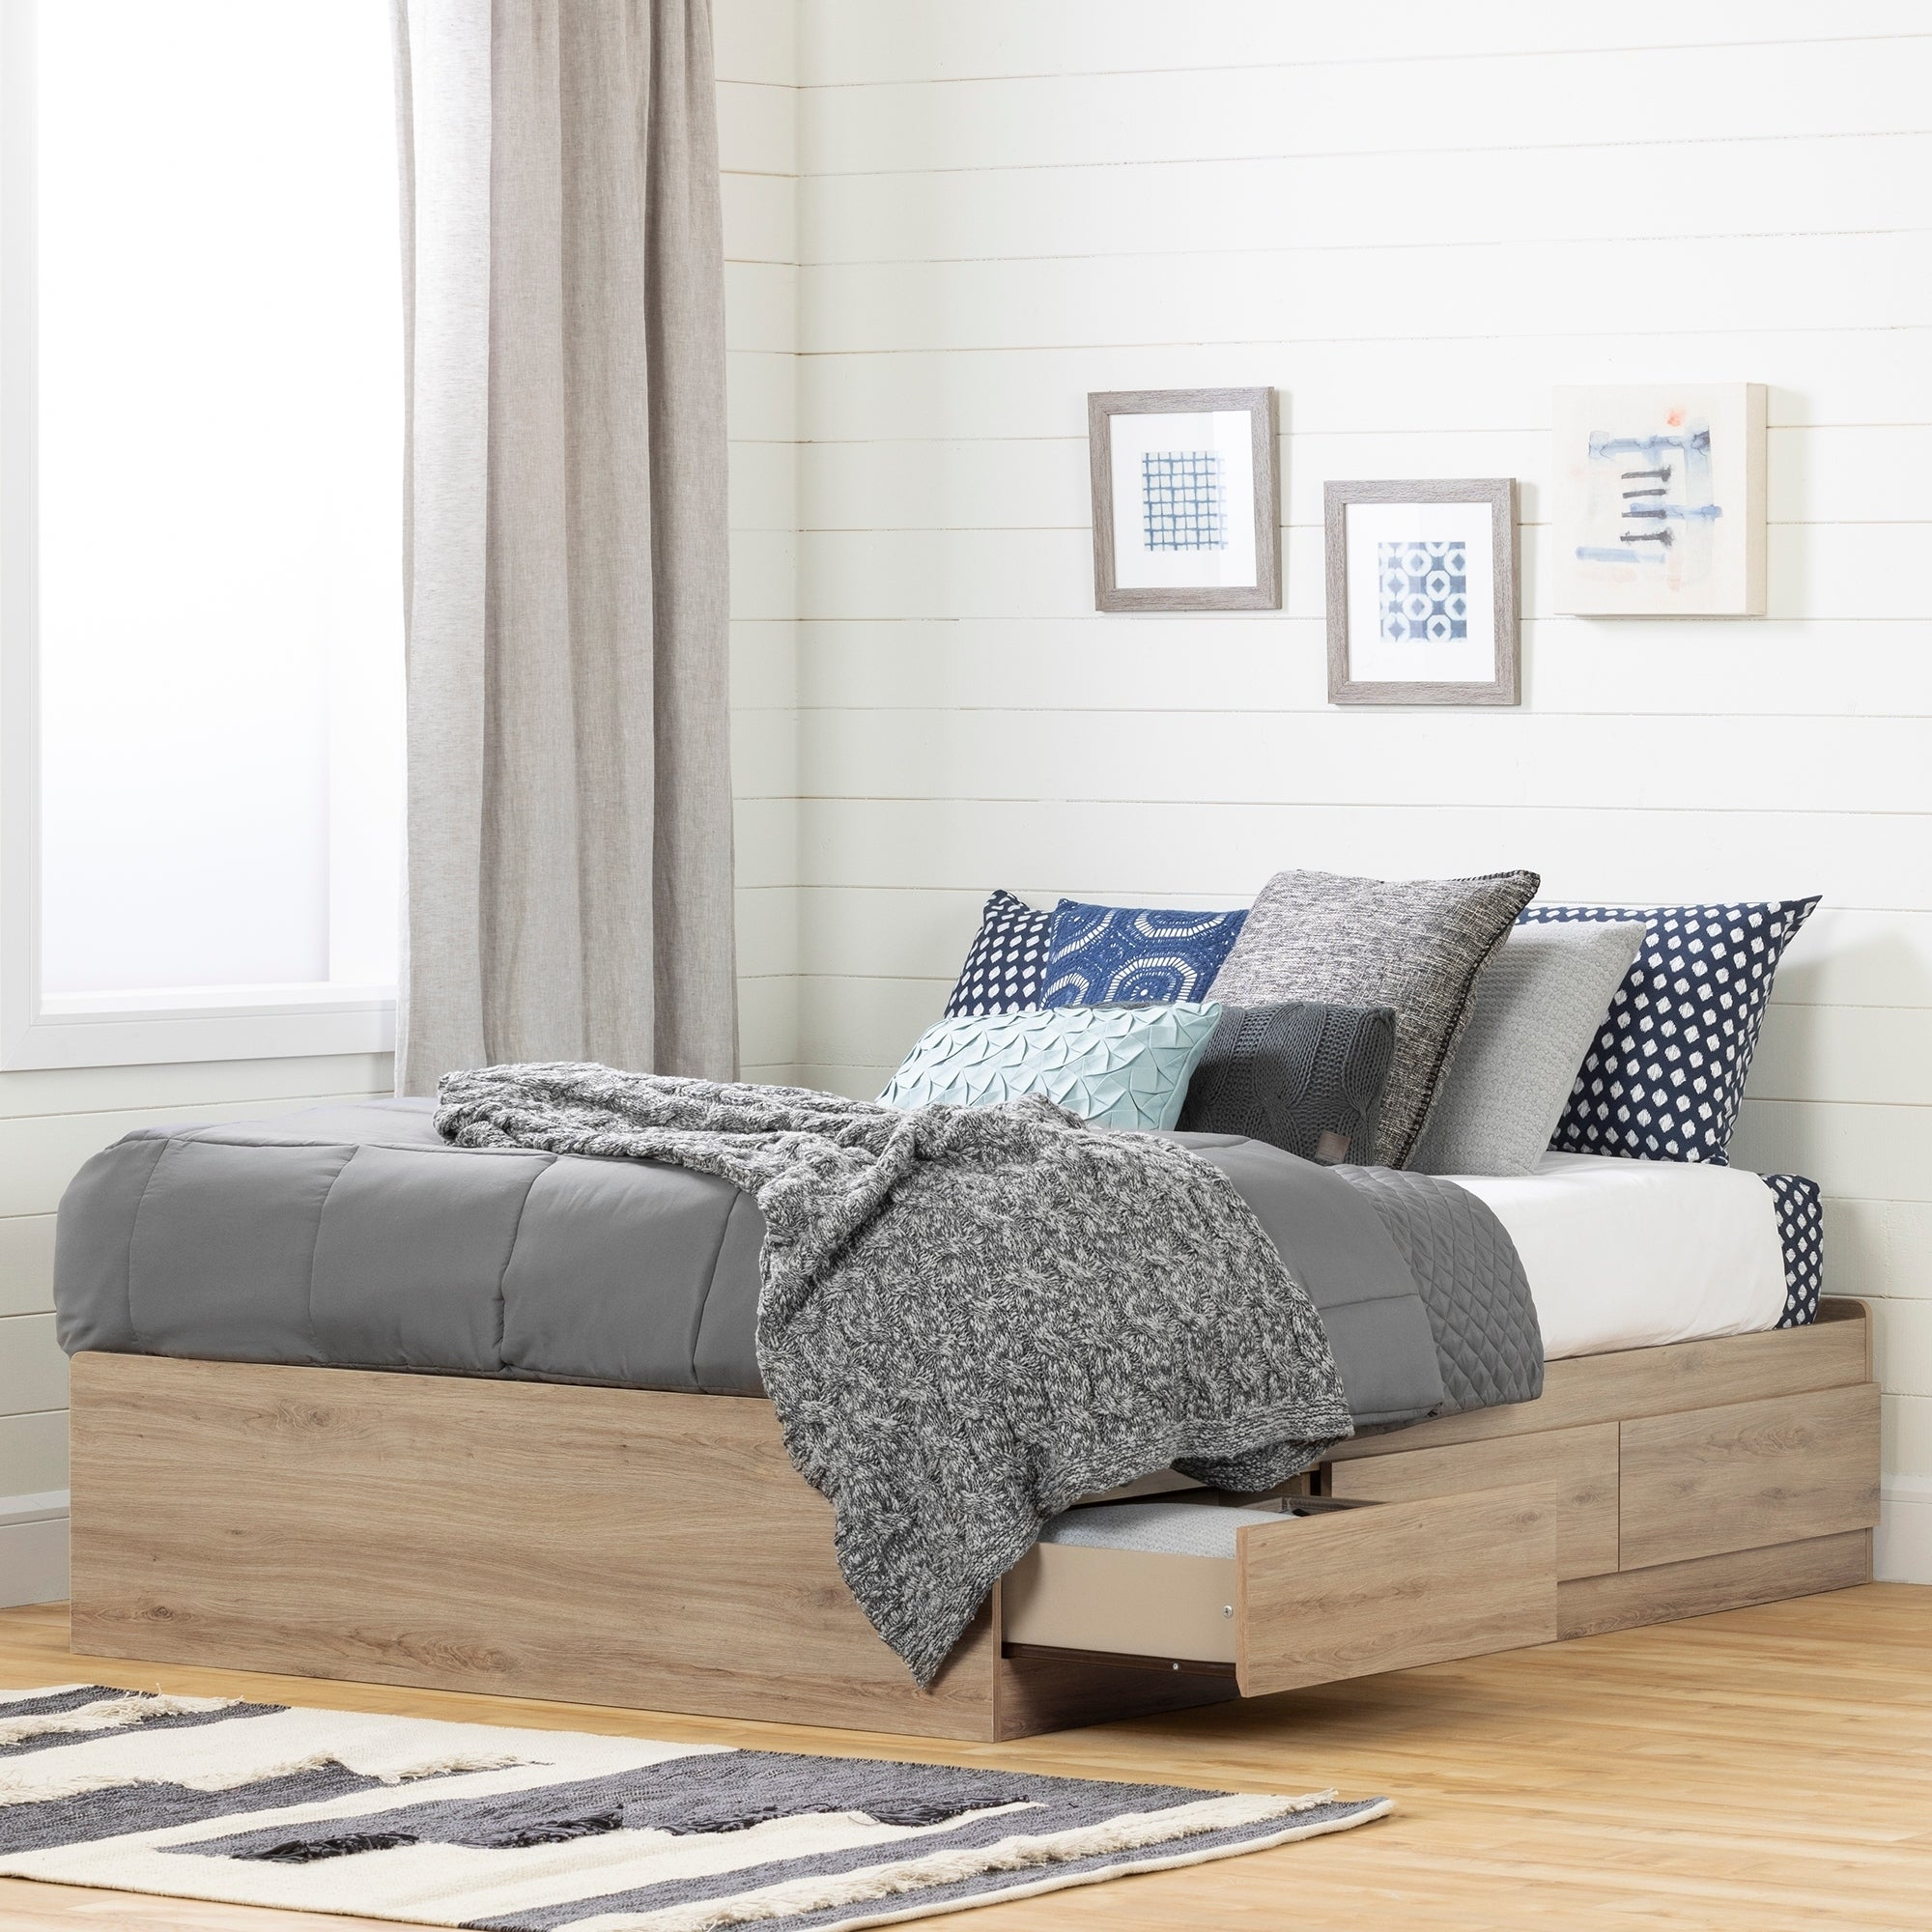 South Shore Fakto Mates Bed with Storage Drawers (Rustic Oak)